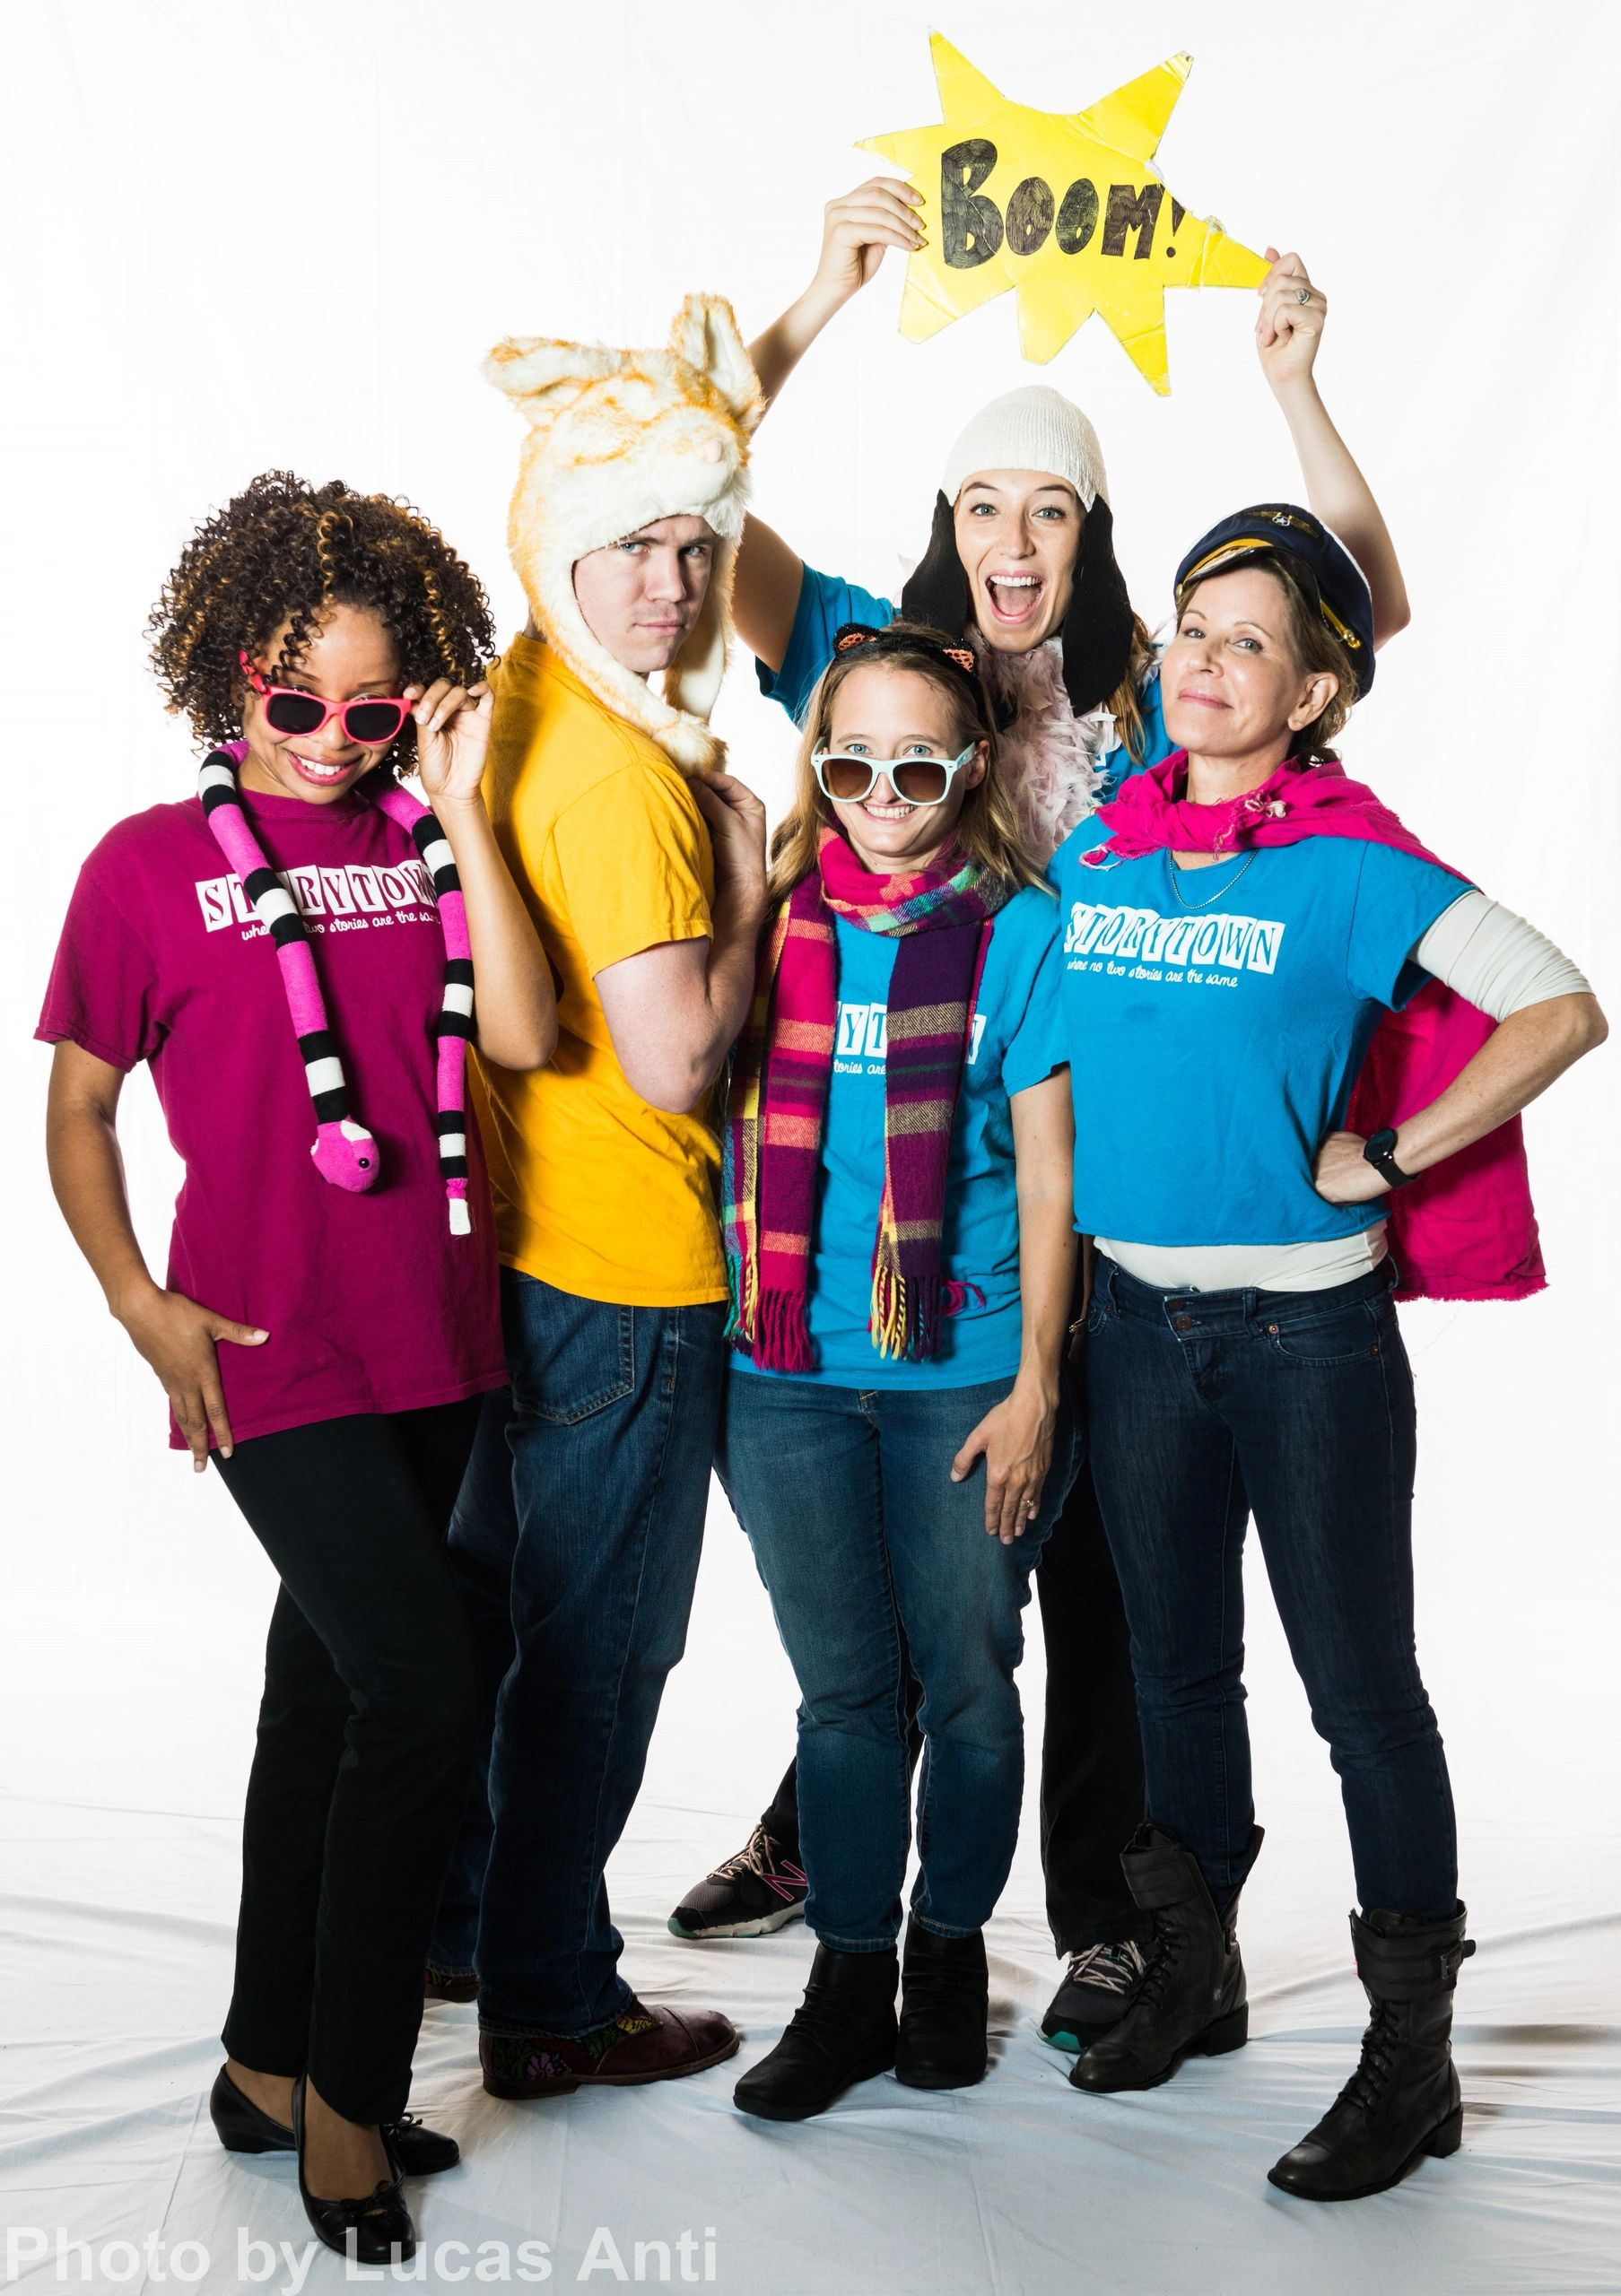 Storytown Improv's townies performs live improvised musical children's theater in Chicago